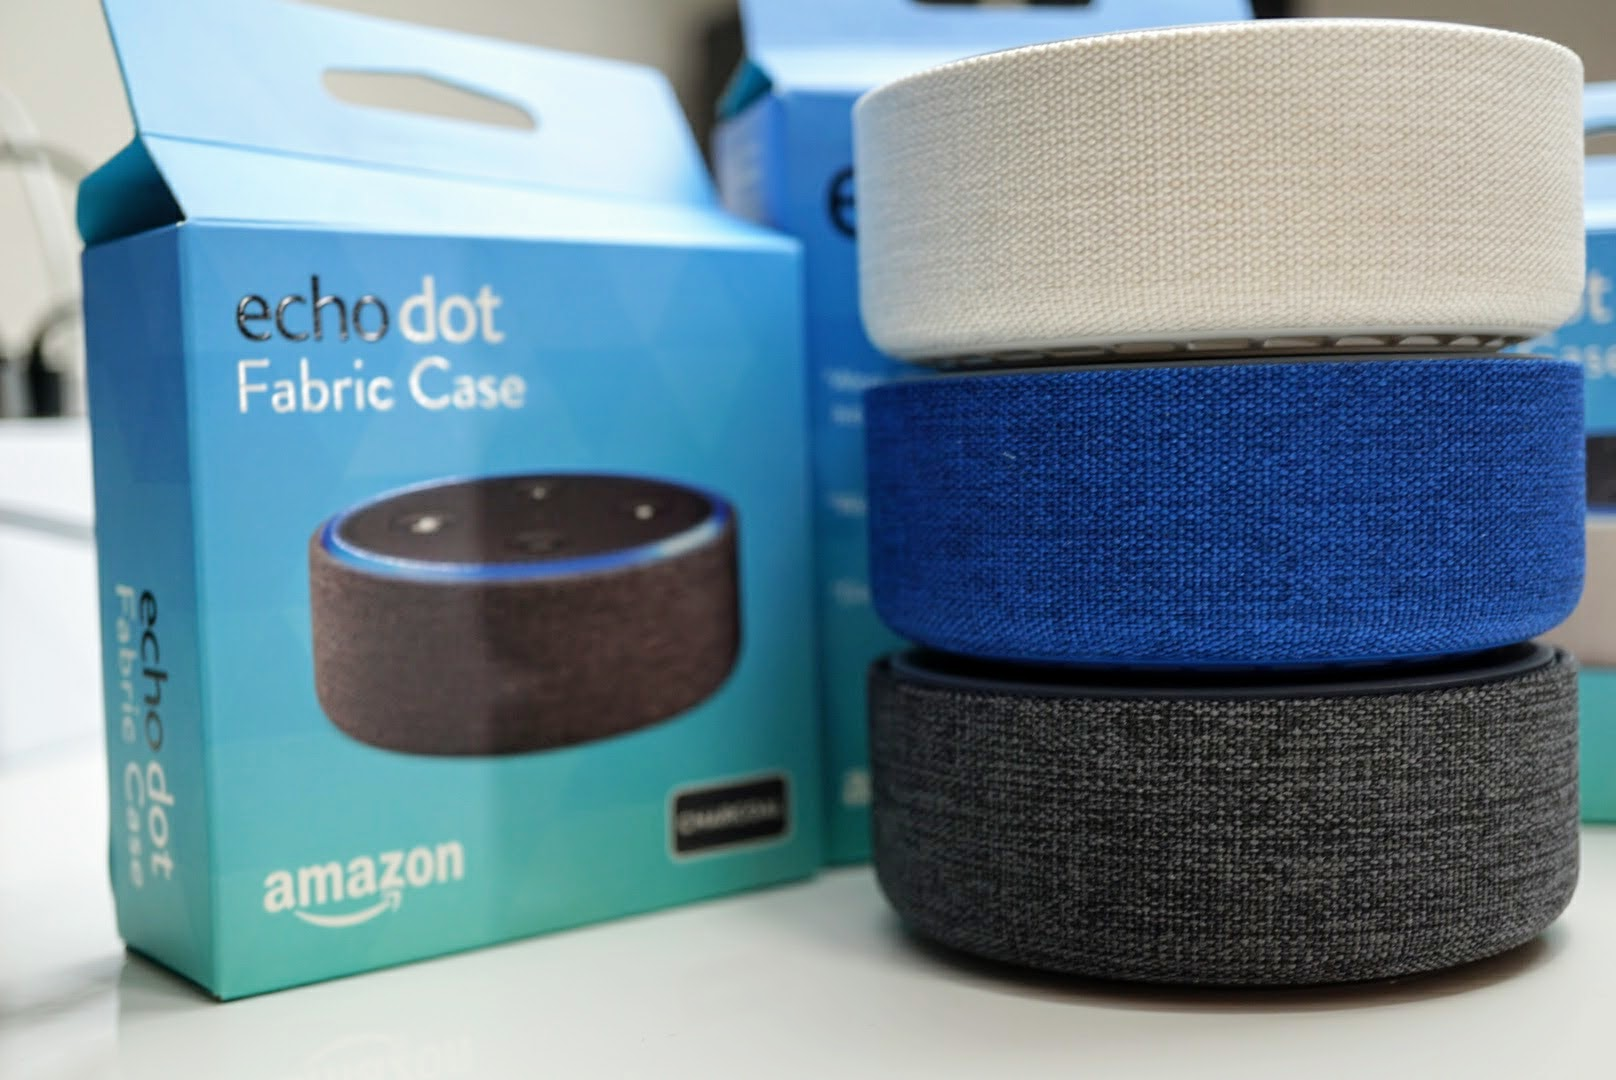 the amazon echo dot covers are a great way to dress up your smart